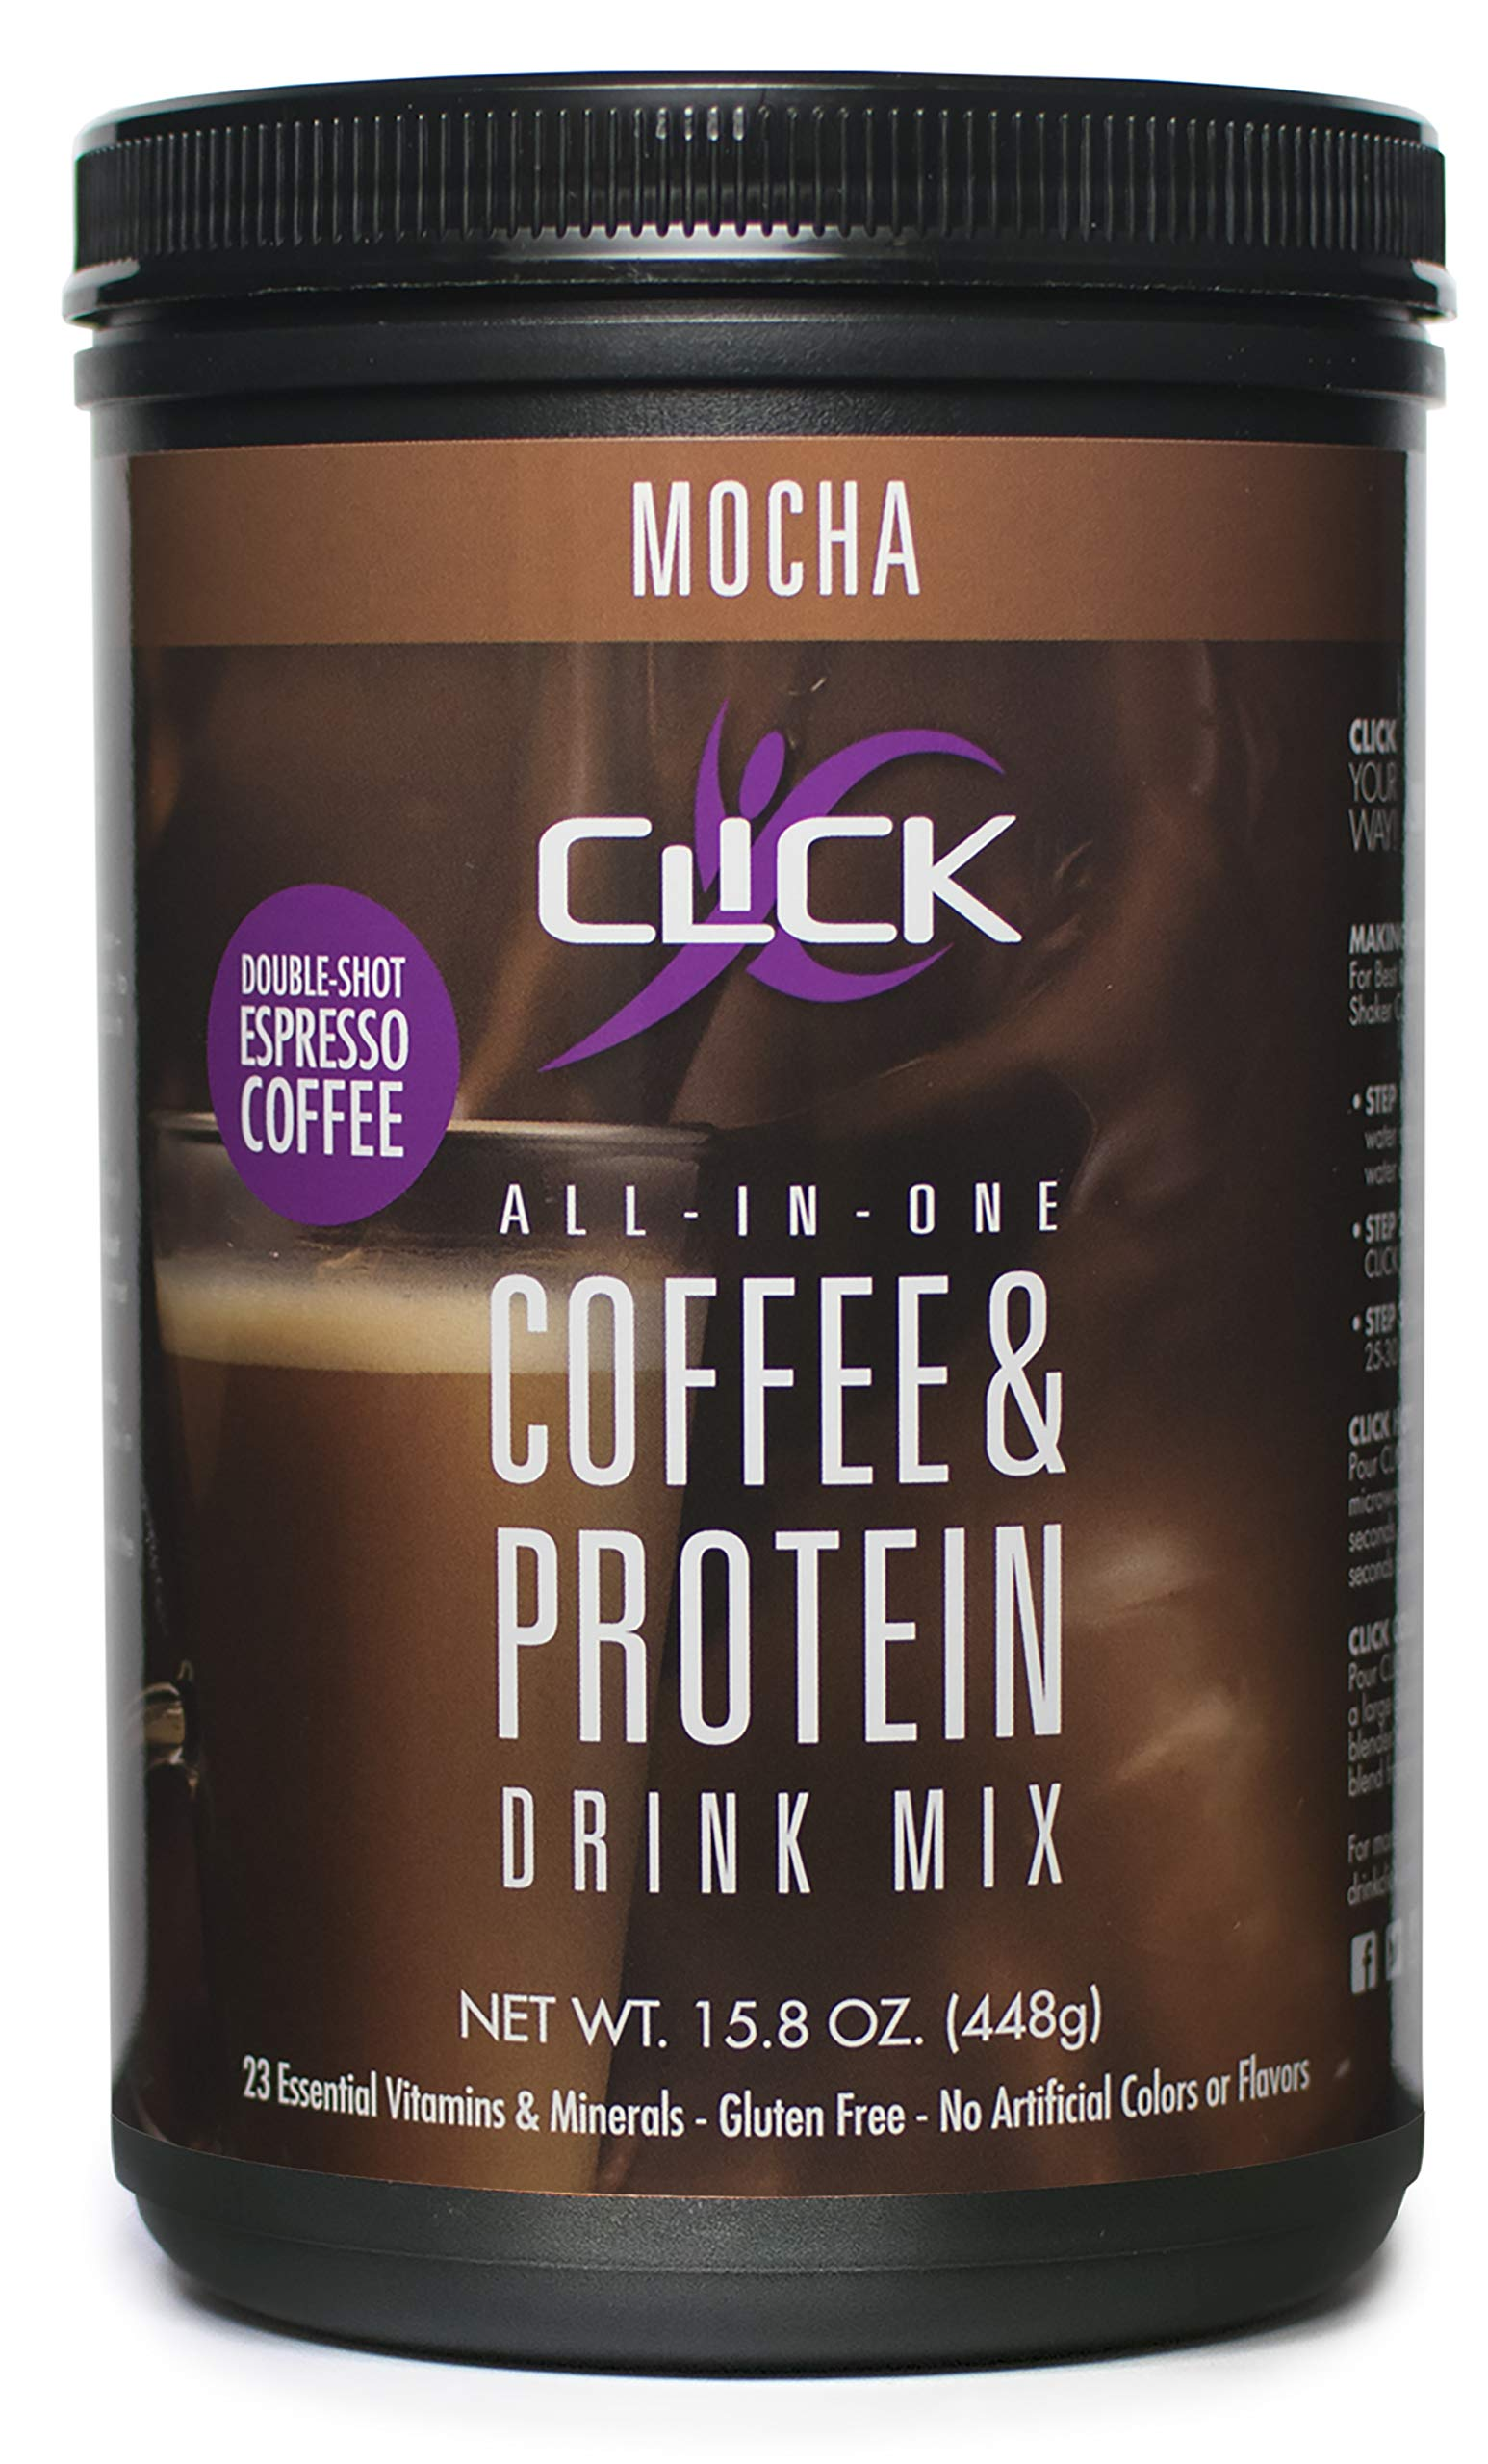 CLICK All-In-One Protein & Coffee Meal Replacement Drink Mix, Mocha,